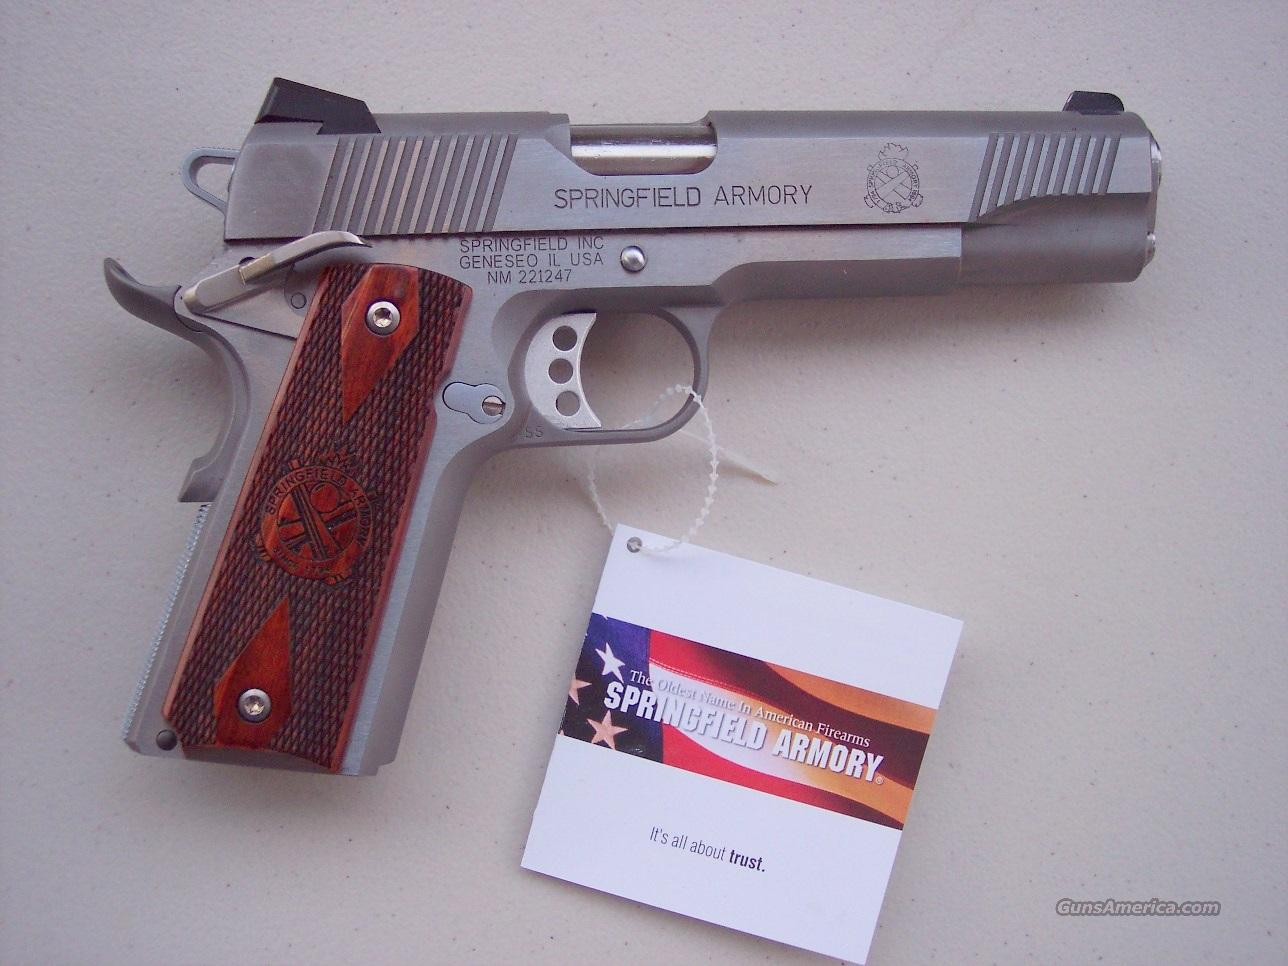 Springfield Armory 1911 .45 acp Loaded Stainless NEW  Guns > Pistols > Springfield Armory Pistols > 1911 Type